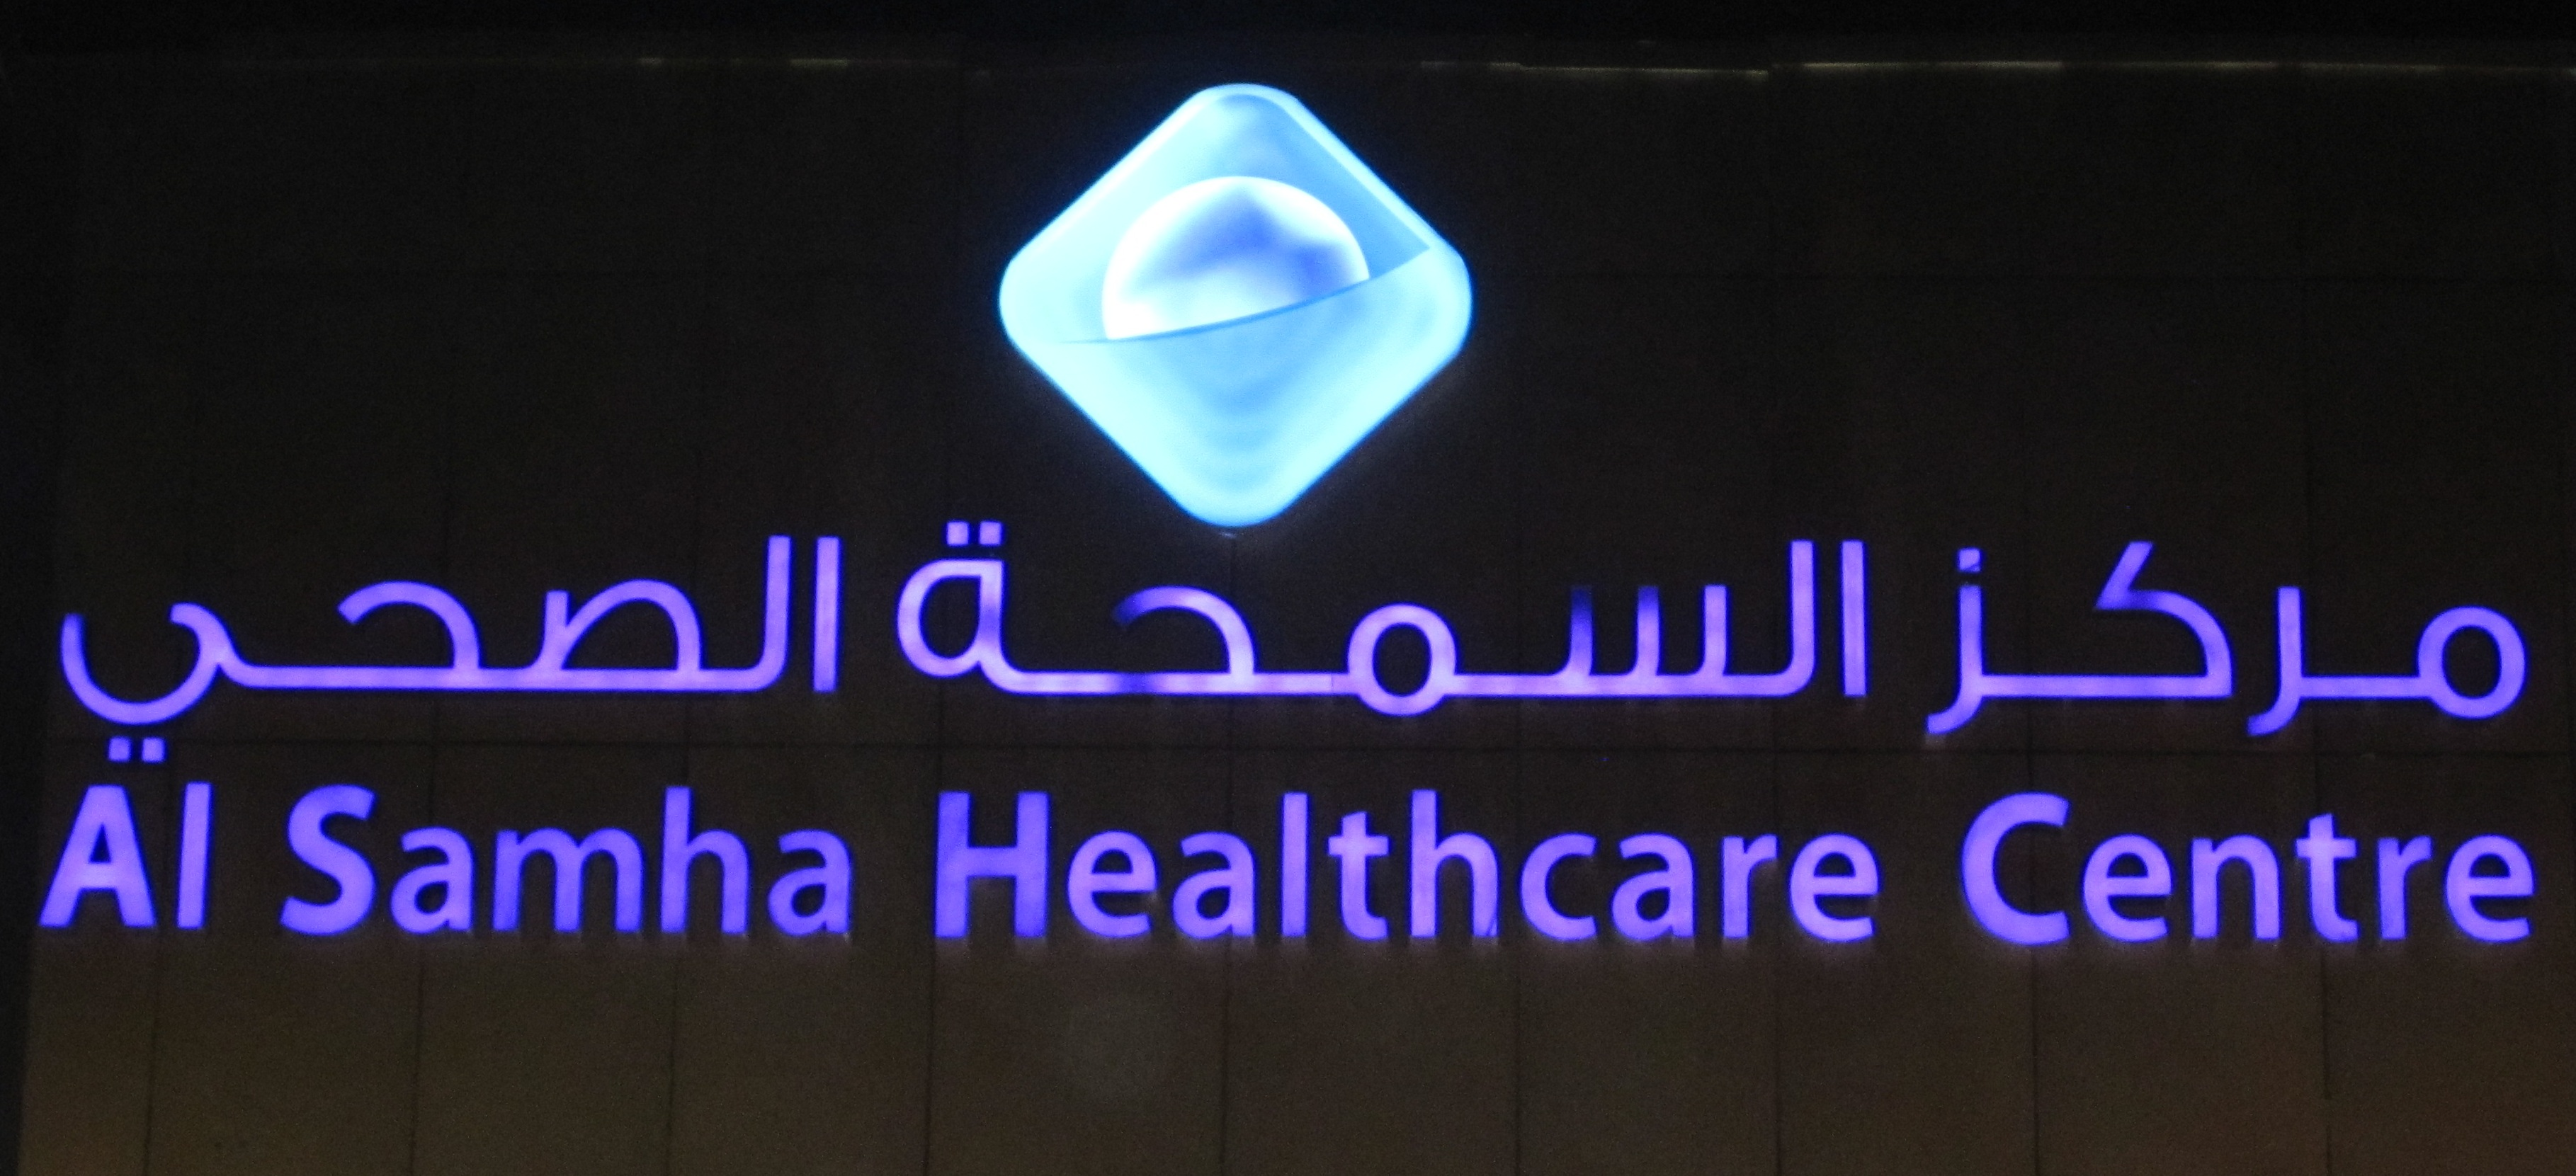 <h2>SEHA Samha - External Sign</h2><br/>